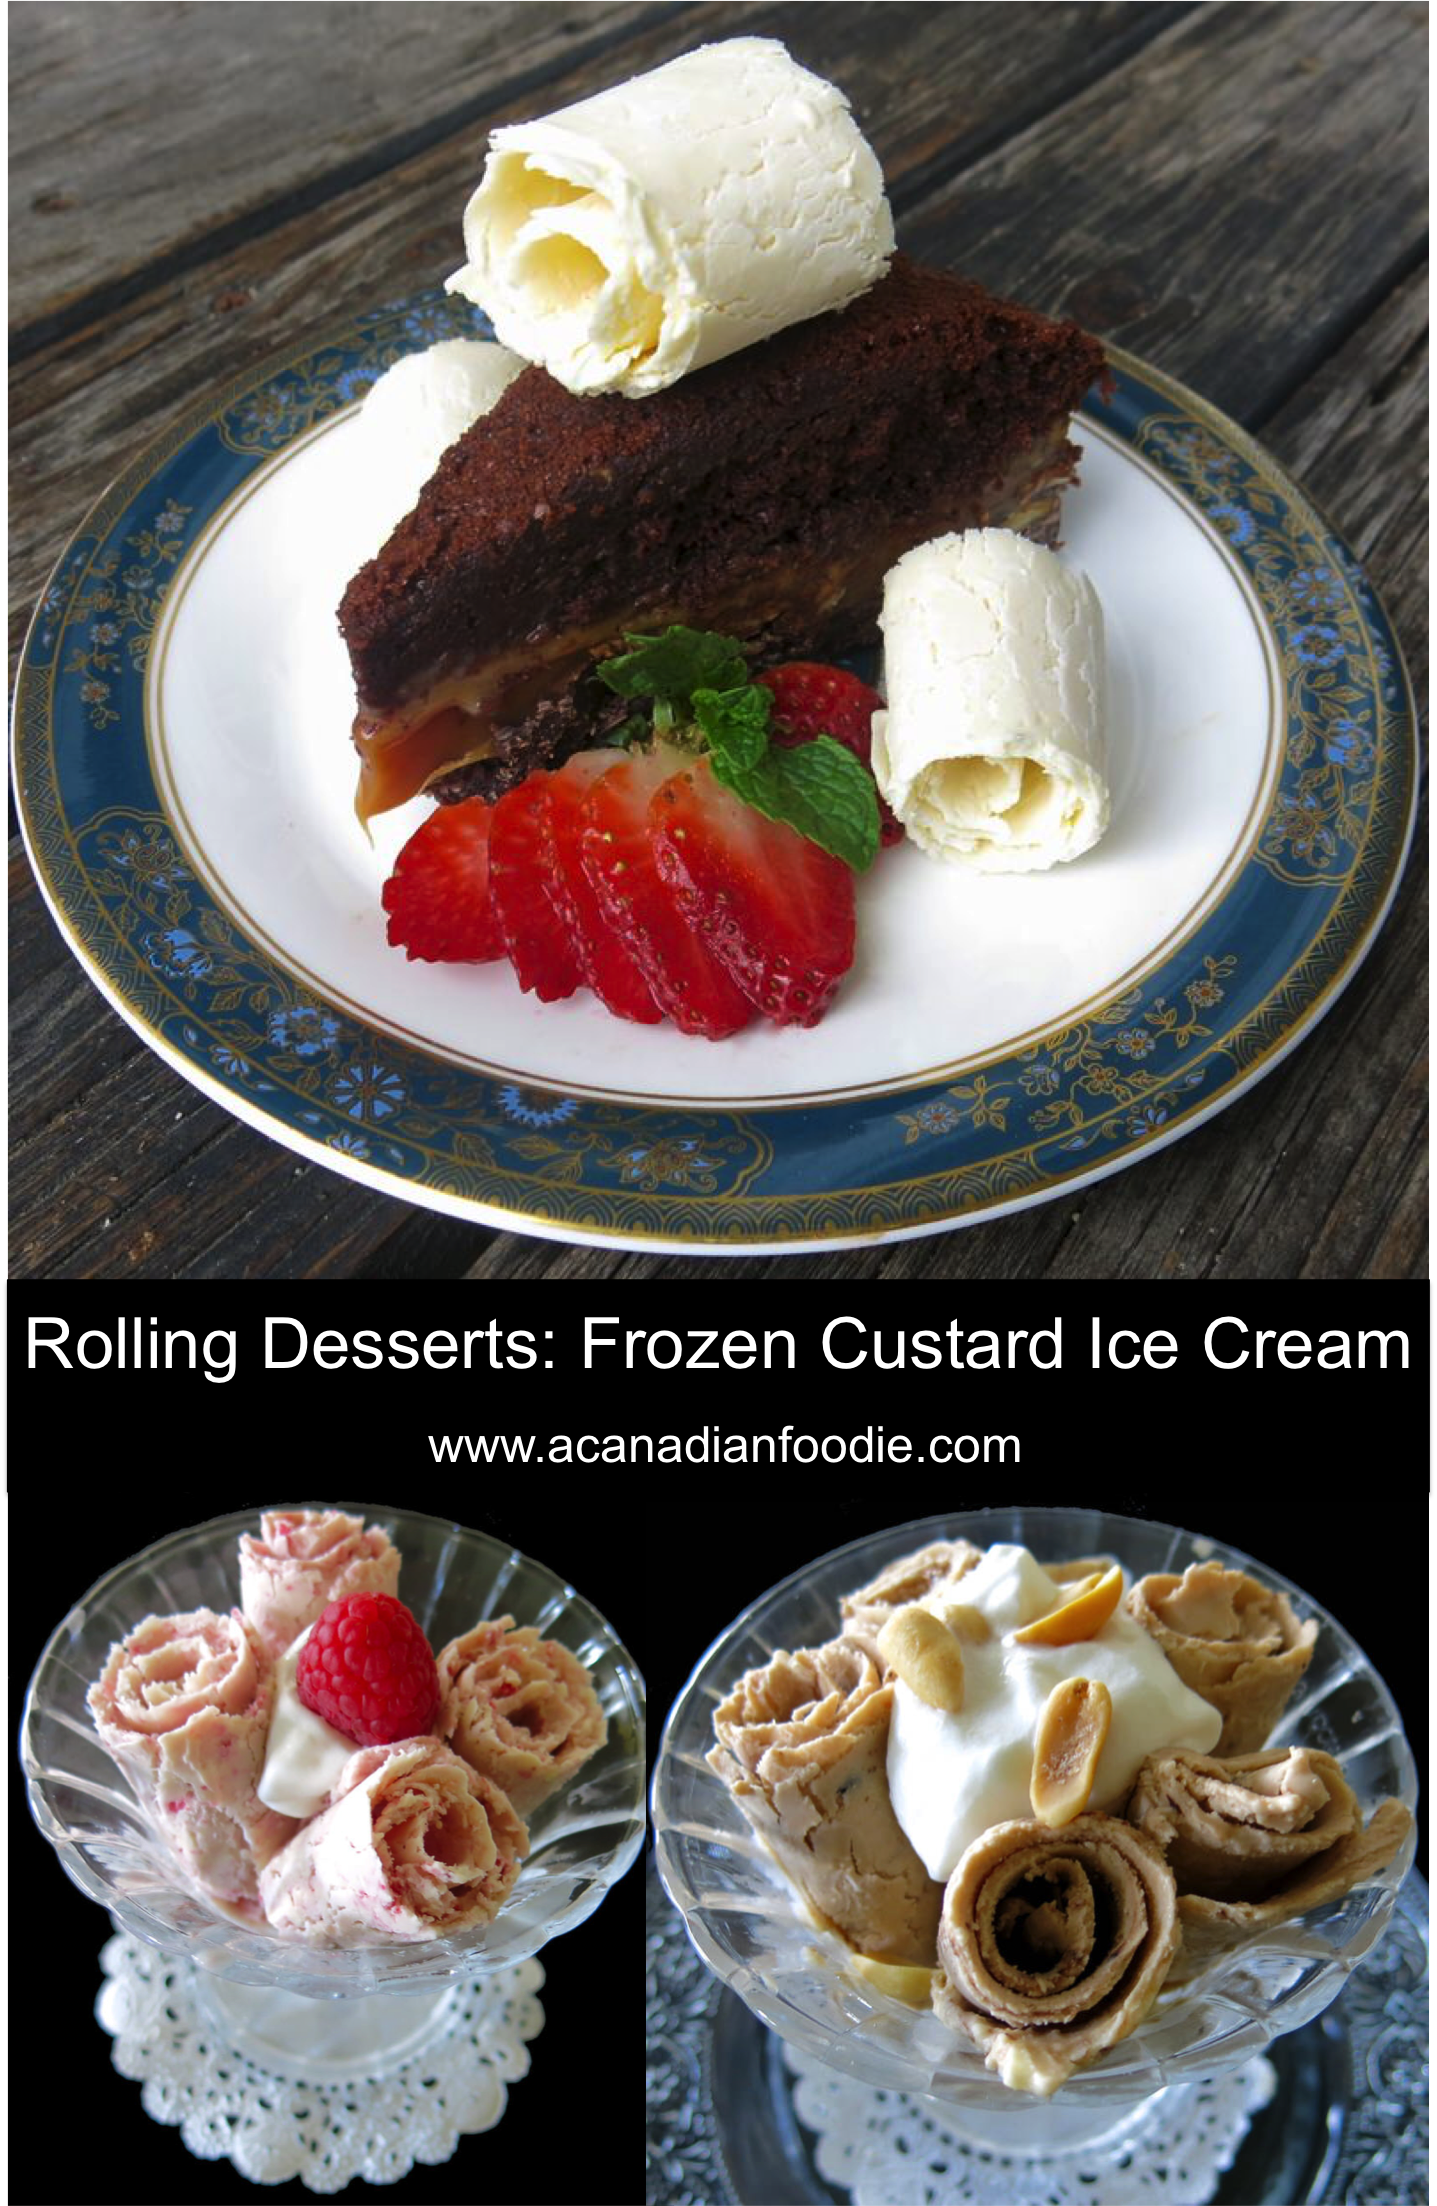 Rolling Desserts Ice Cream Flavour Ideas: step-by-step instructions with video. Great party station! @rollingdesserts #rolledicecream